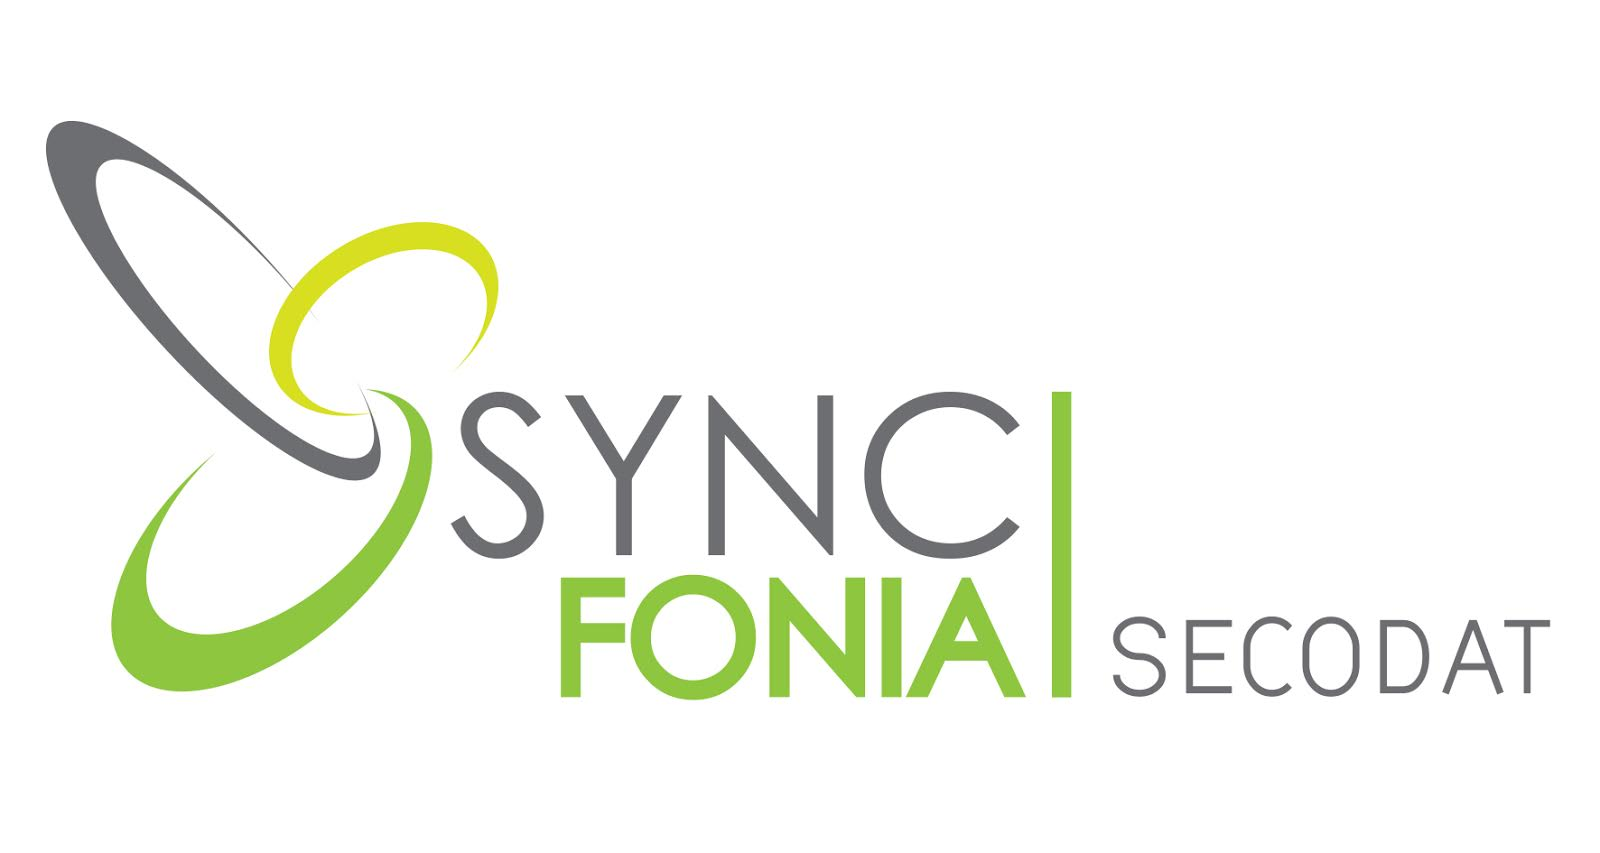 Syncfonia_SECODAT